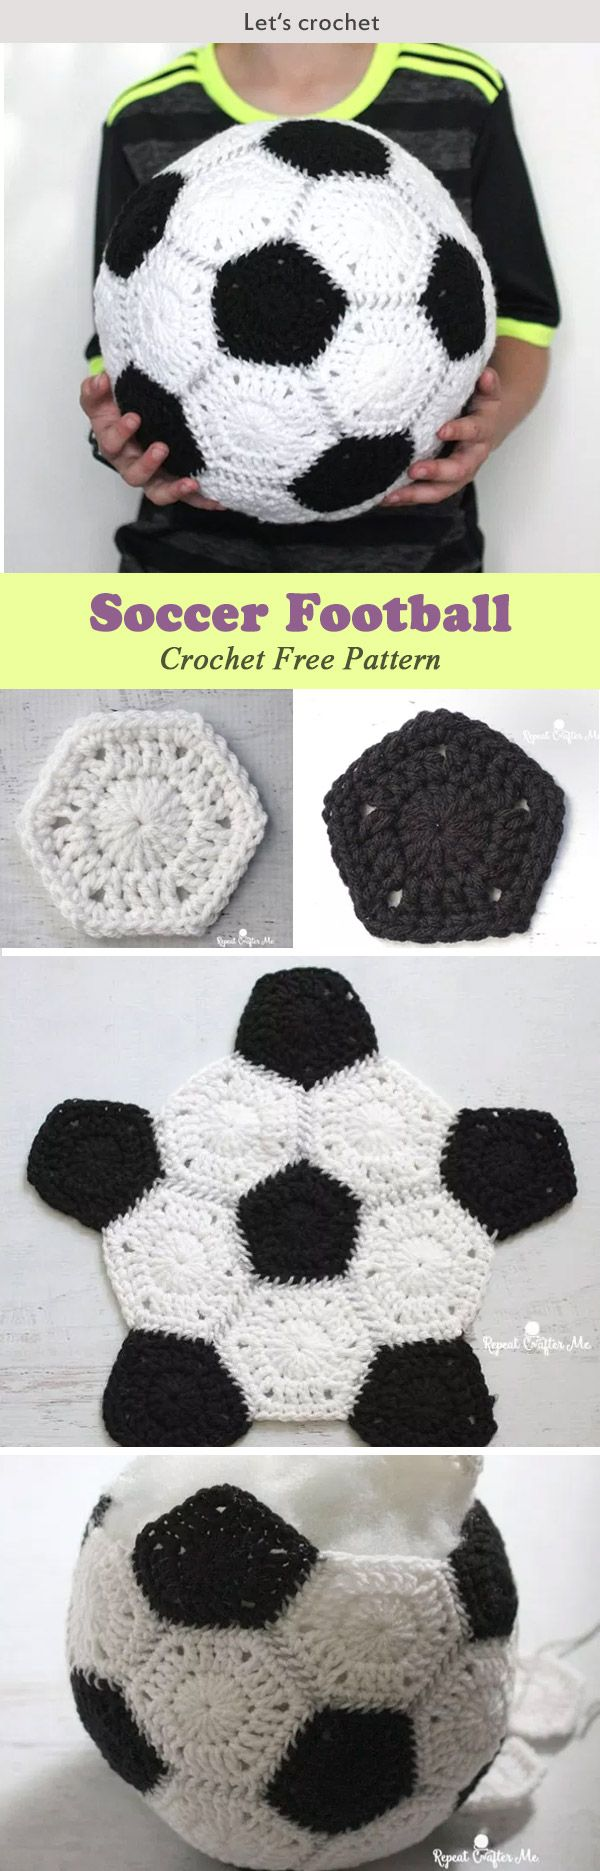 Crochet Soccer Football Free Pattern | Crocheting | Pinterest | Free ...